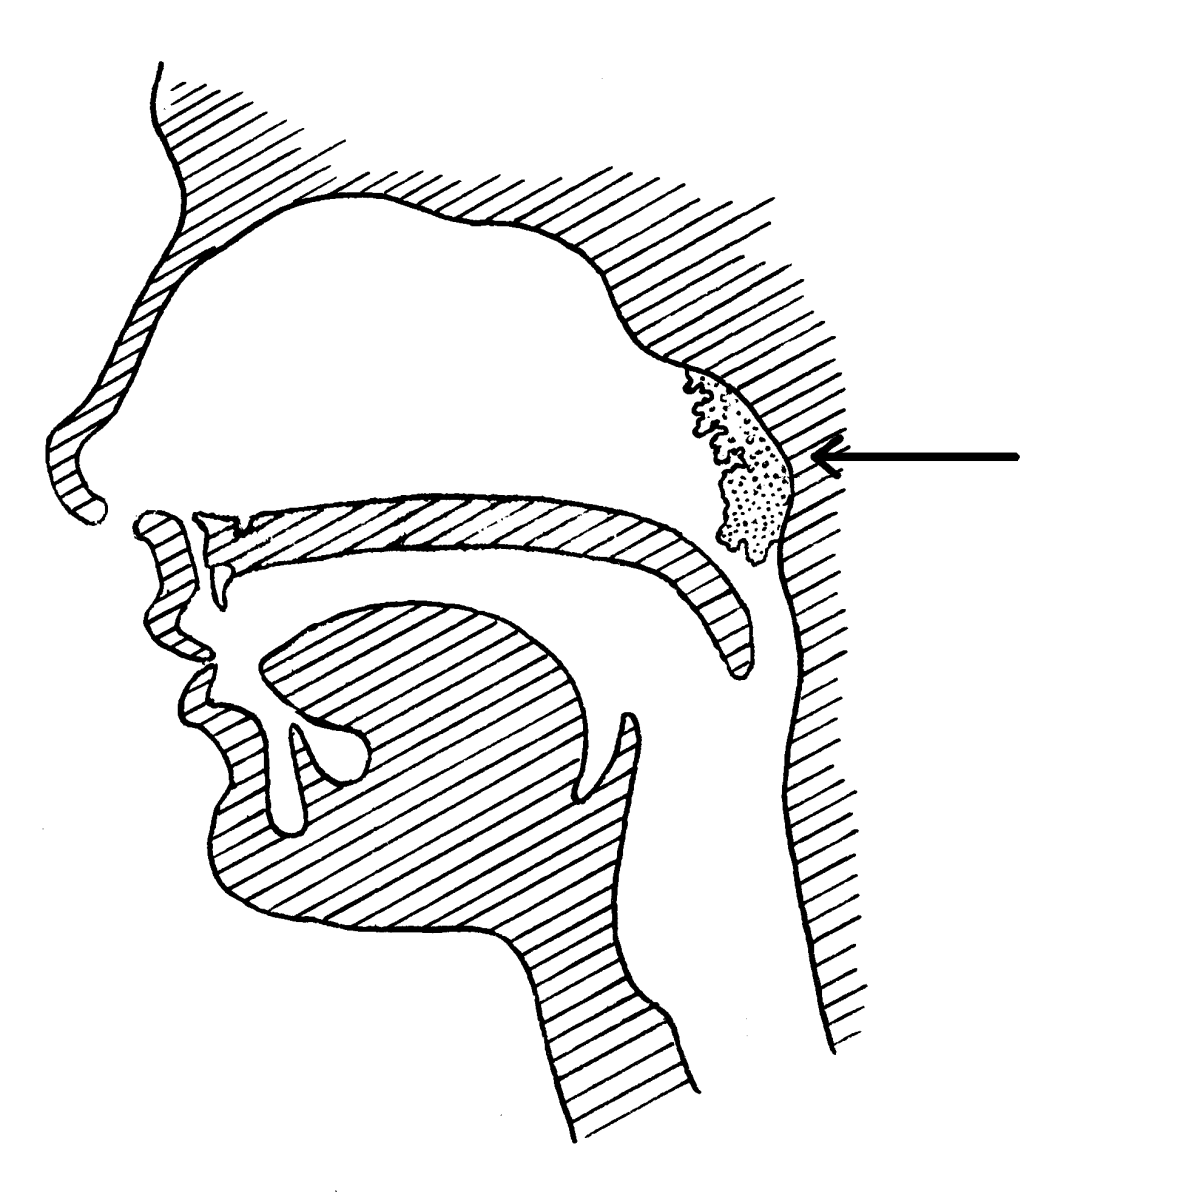 The arrow points to where the adenoids are located.